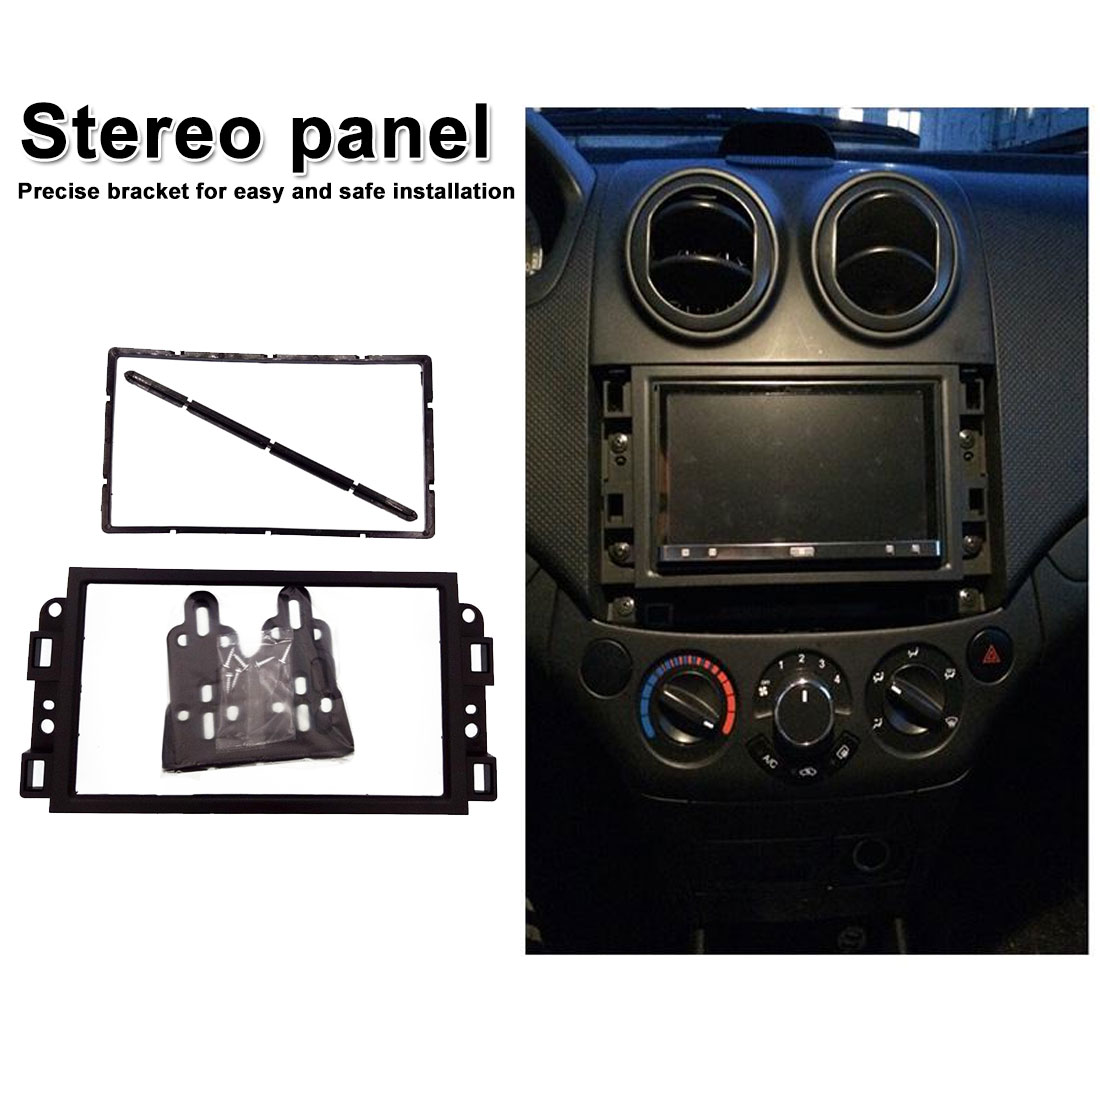 For Chevrolet Lova Captiva Gentra Aveo 2006 2007-2011  audio and video modification frame 2DIN conversion panel bracket